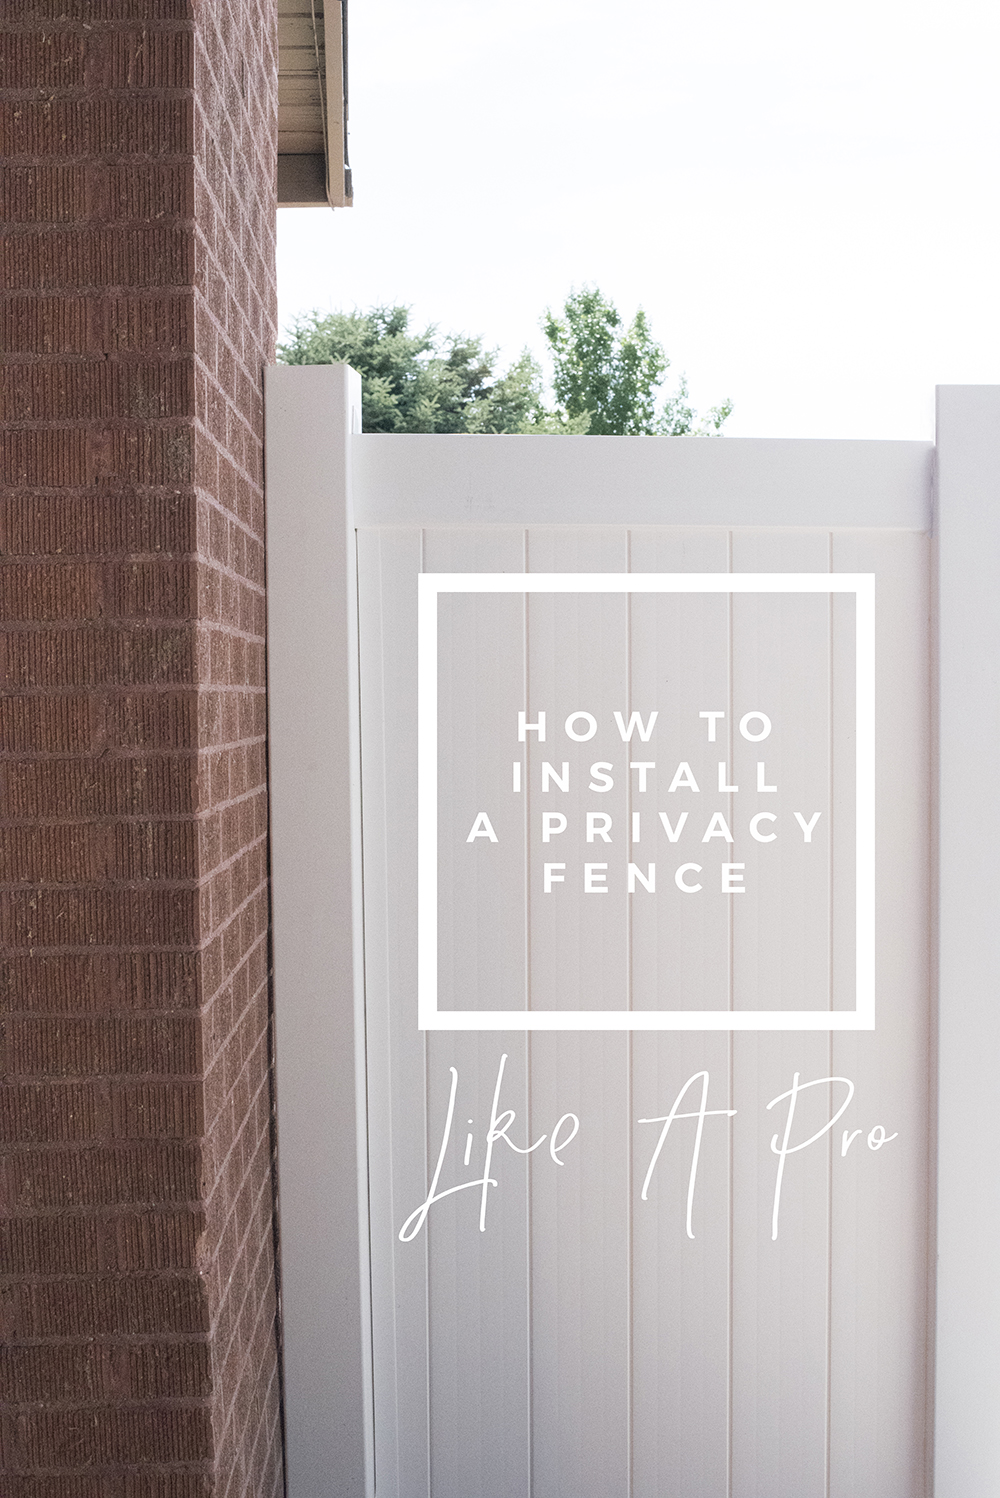 How-to-Install-a-Privacy-Fence